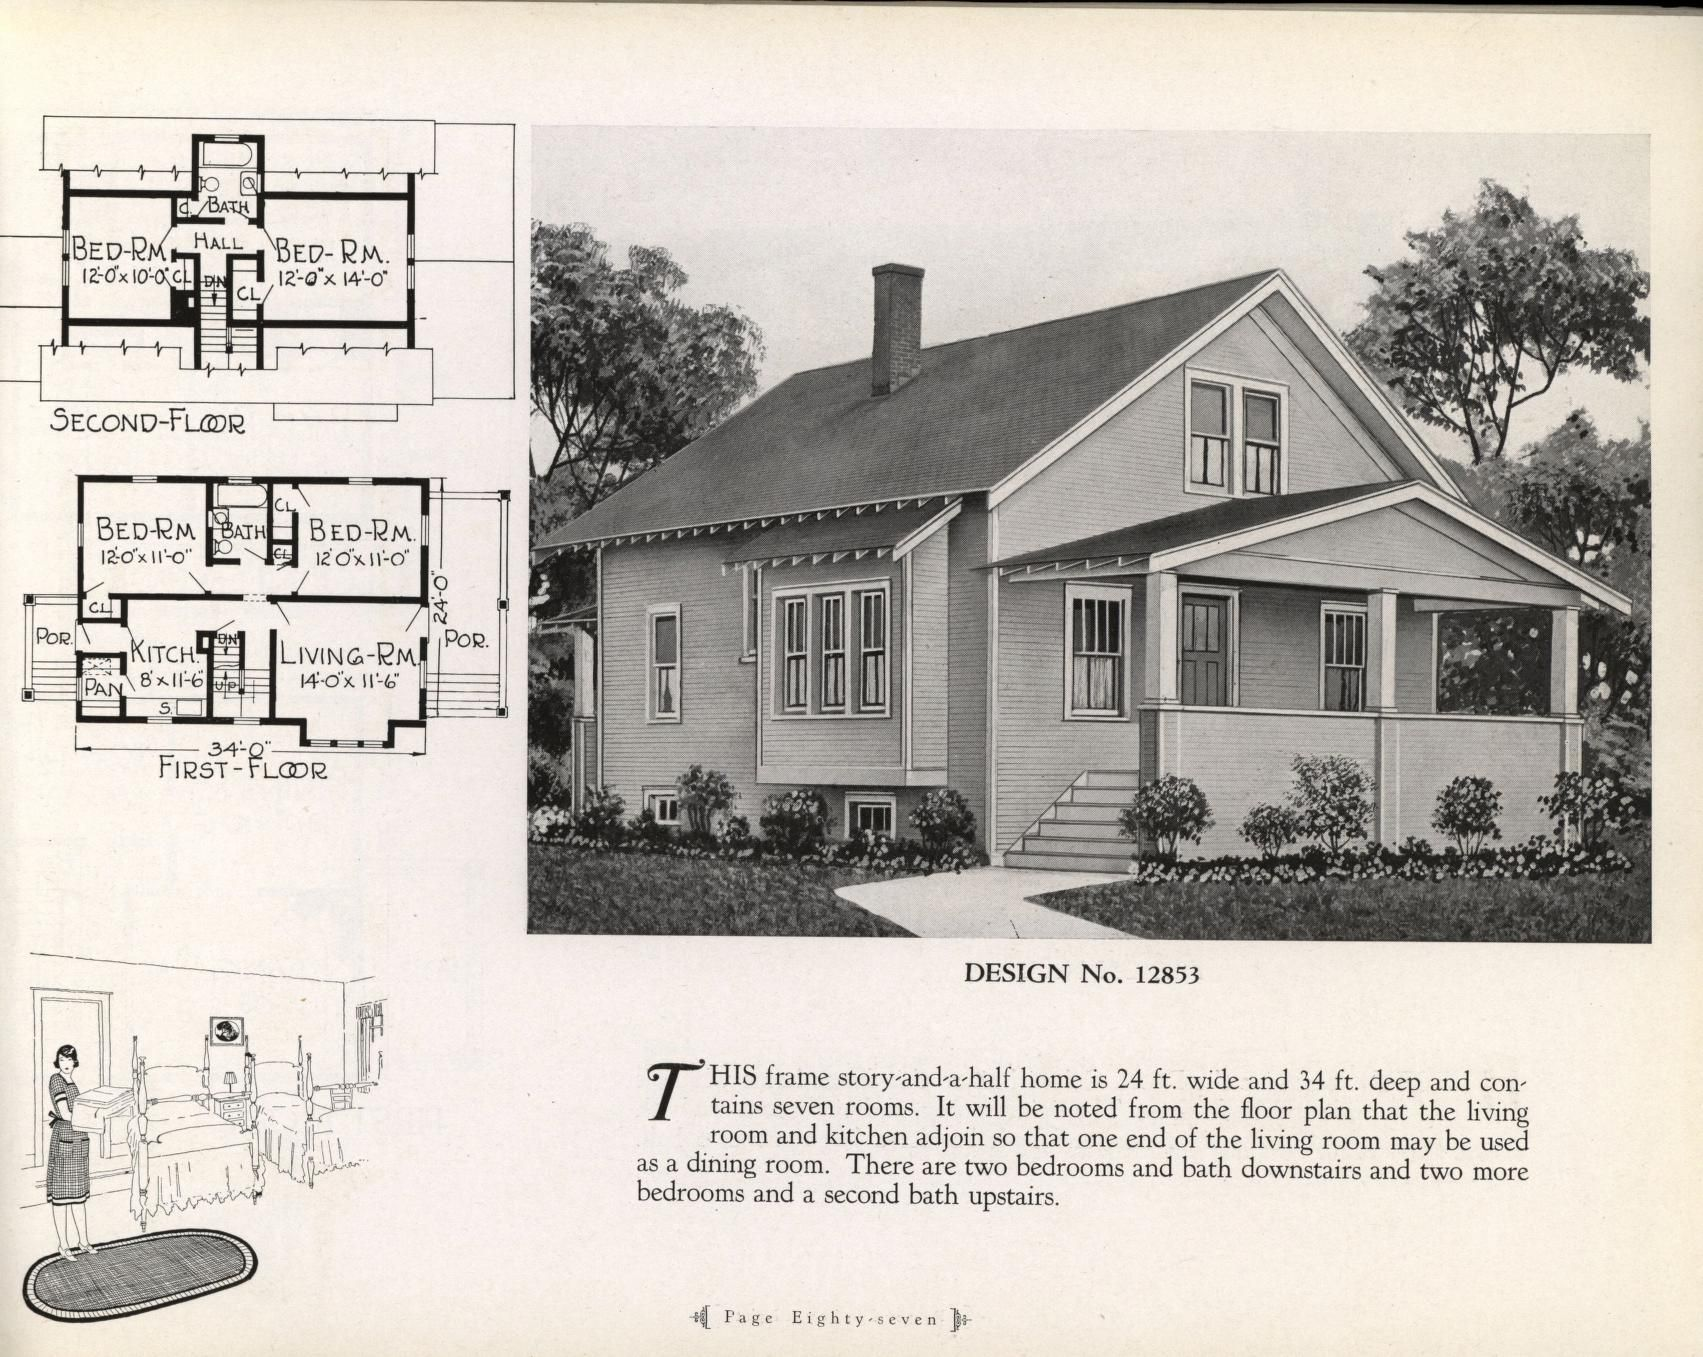 Helps for home builders. : Plainfield Ice & Supply Co ... on ice appliances, stable plans, ice dogs, ice furniture, ice office, indoor riding arena building plans, ice houses in the 1800s, rustic ice chest plans, iceshanty plans, ice luge stand plans, ice landscaping, plant press plans, ice houses on farms, 8x10 ice shack plans, ice box plans, ice trailer plans, ice signs, ice building, ice boat plans, ice wedding,